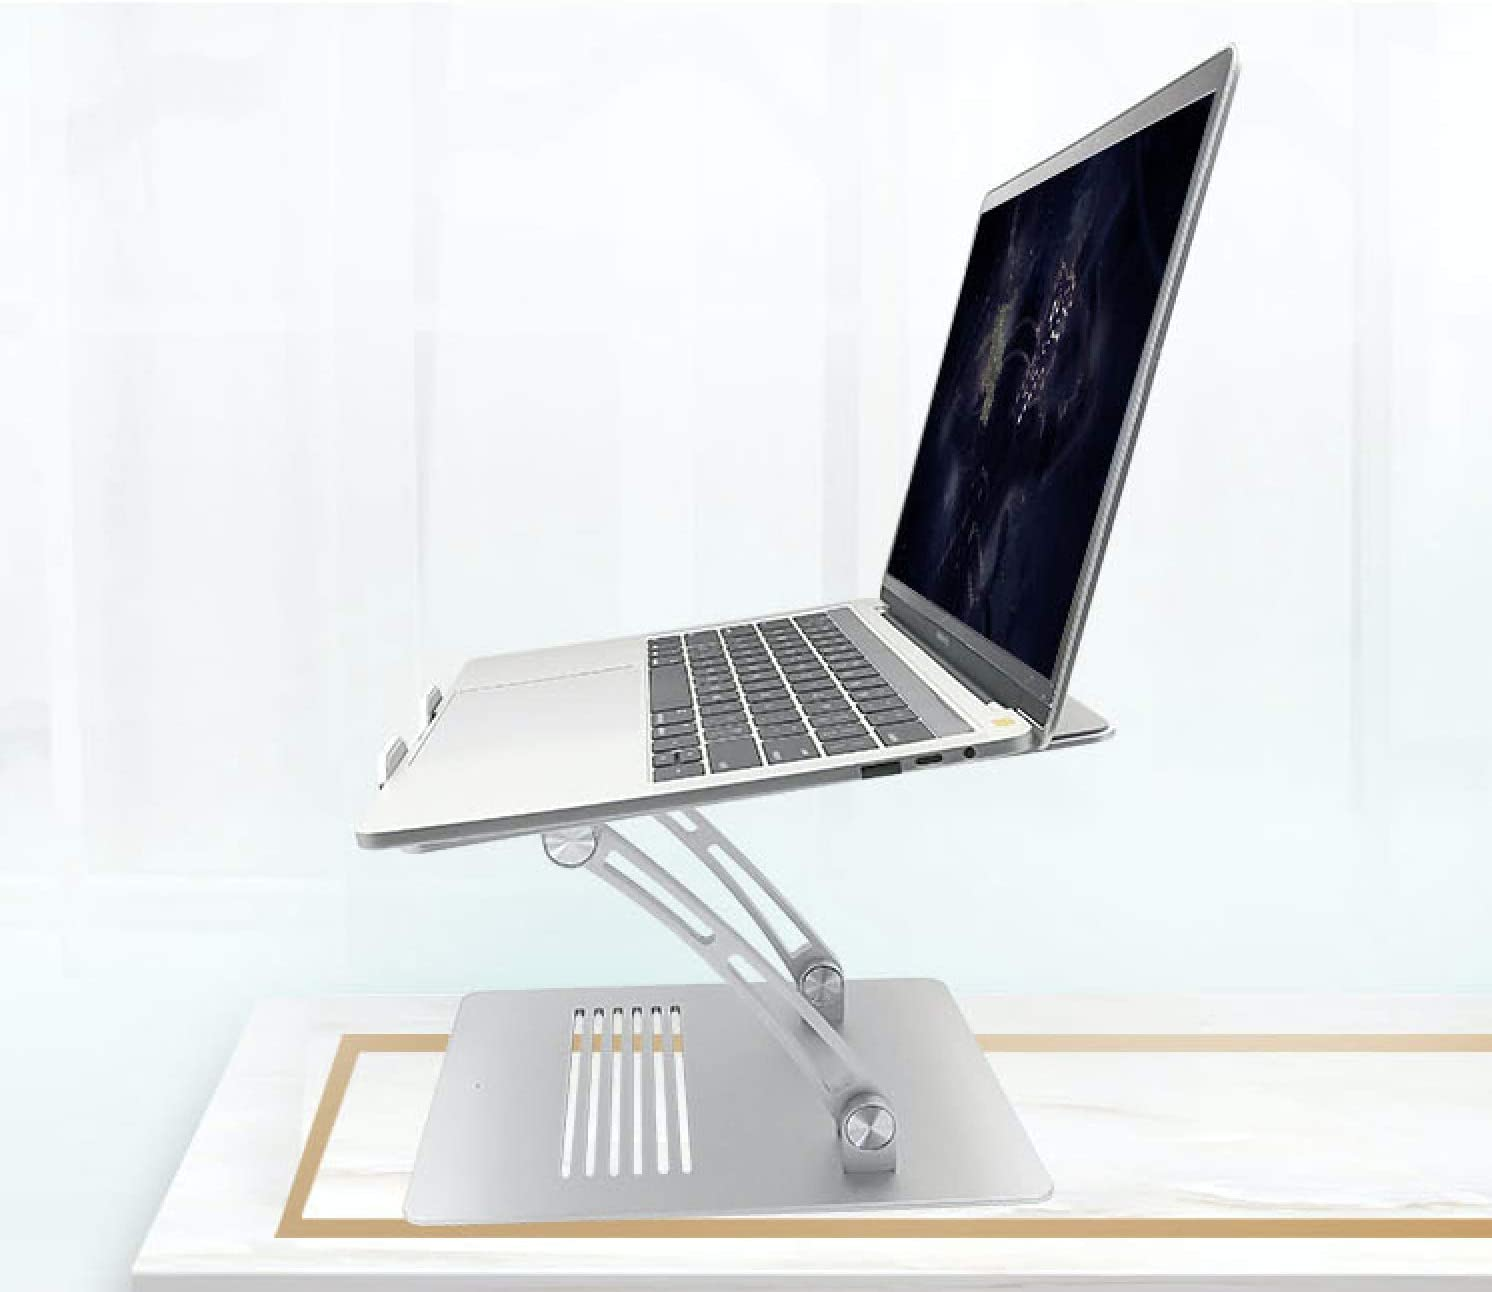 Height Adjustable Laptop Stand by SOPHIE&TOBY. Ergonomic Office Product to Prevent Neck Pain, Provide Better Posture. Perfect for Working from Home. Fit Models of Laptop up to 17 inches Screen Size.